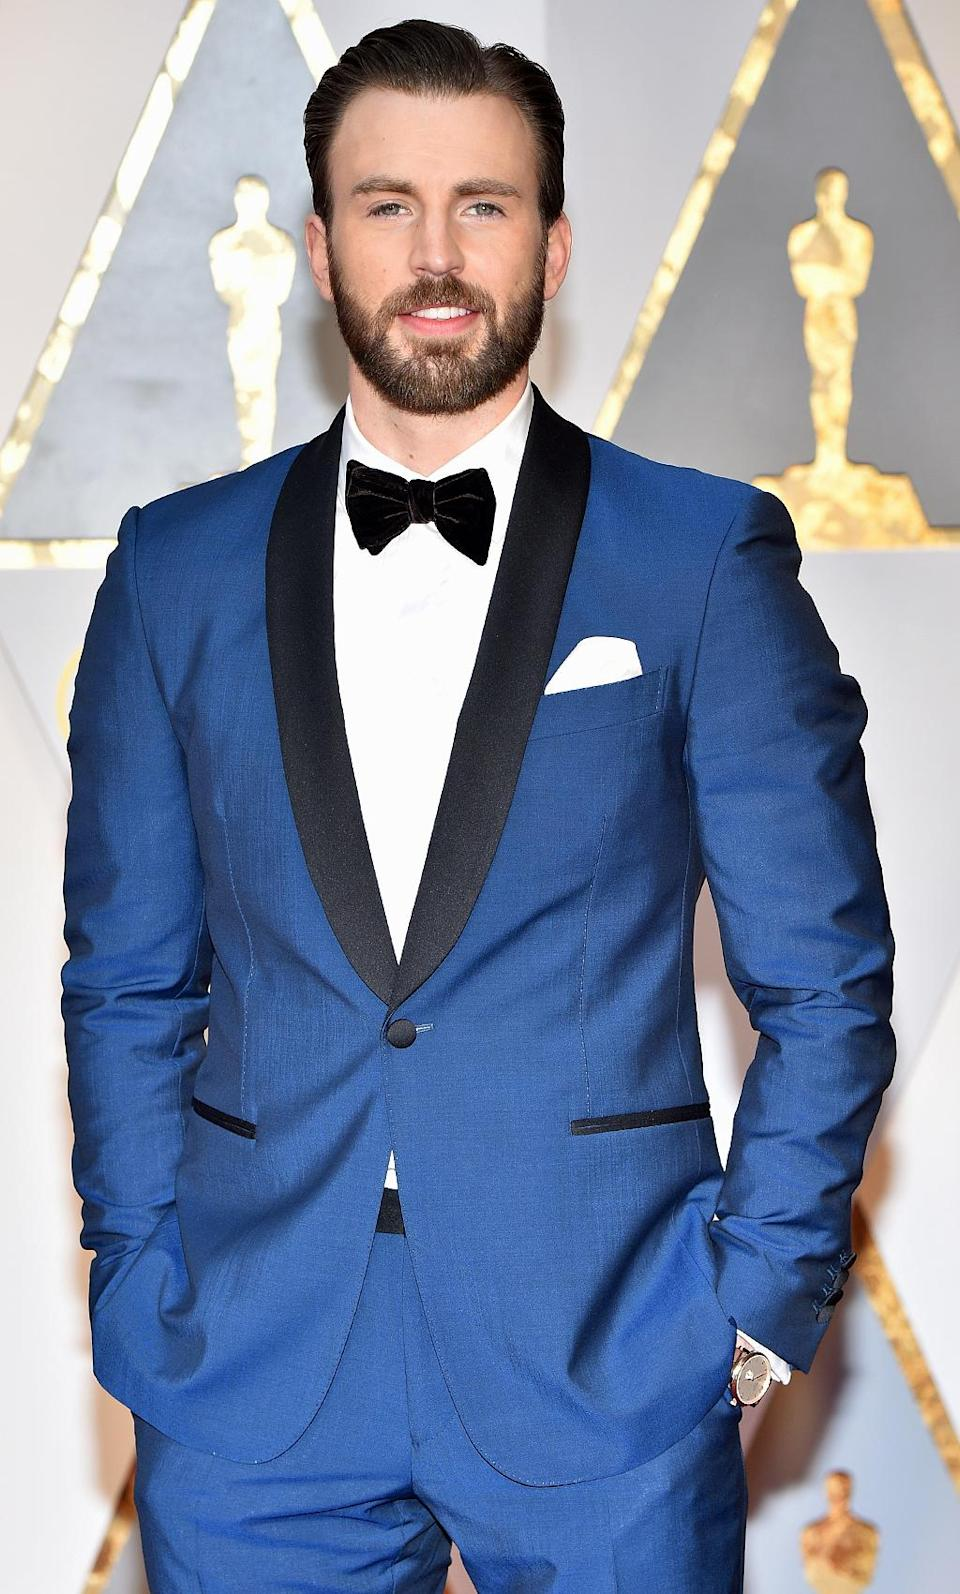 <p>Chris Evans attends the 89th Annual Academy Awards at Hollywood & Highland Center on February 26, 2017 in Hollywood, California. (Photo by Kevin Mazur/Getty Images) </p>